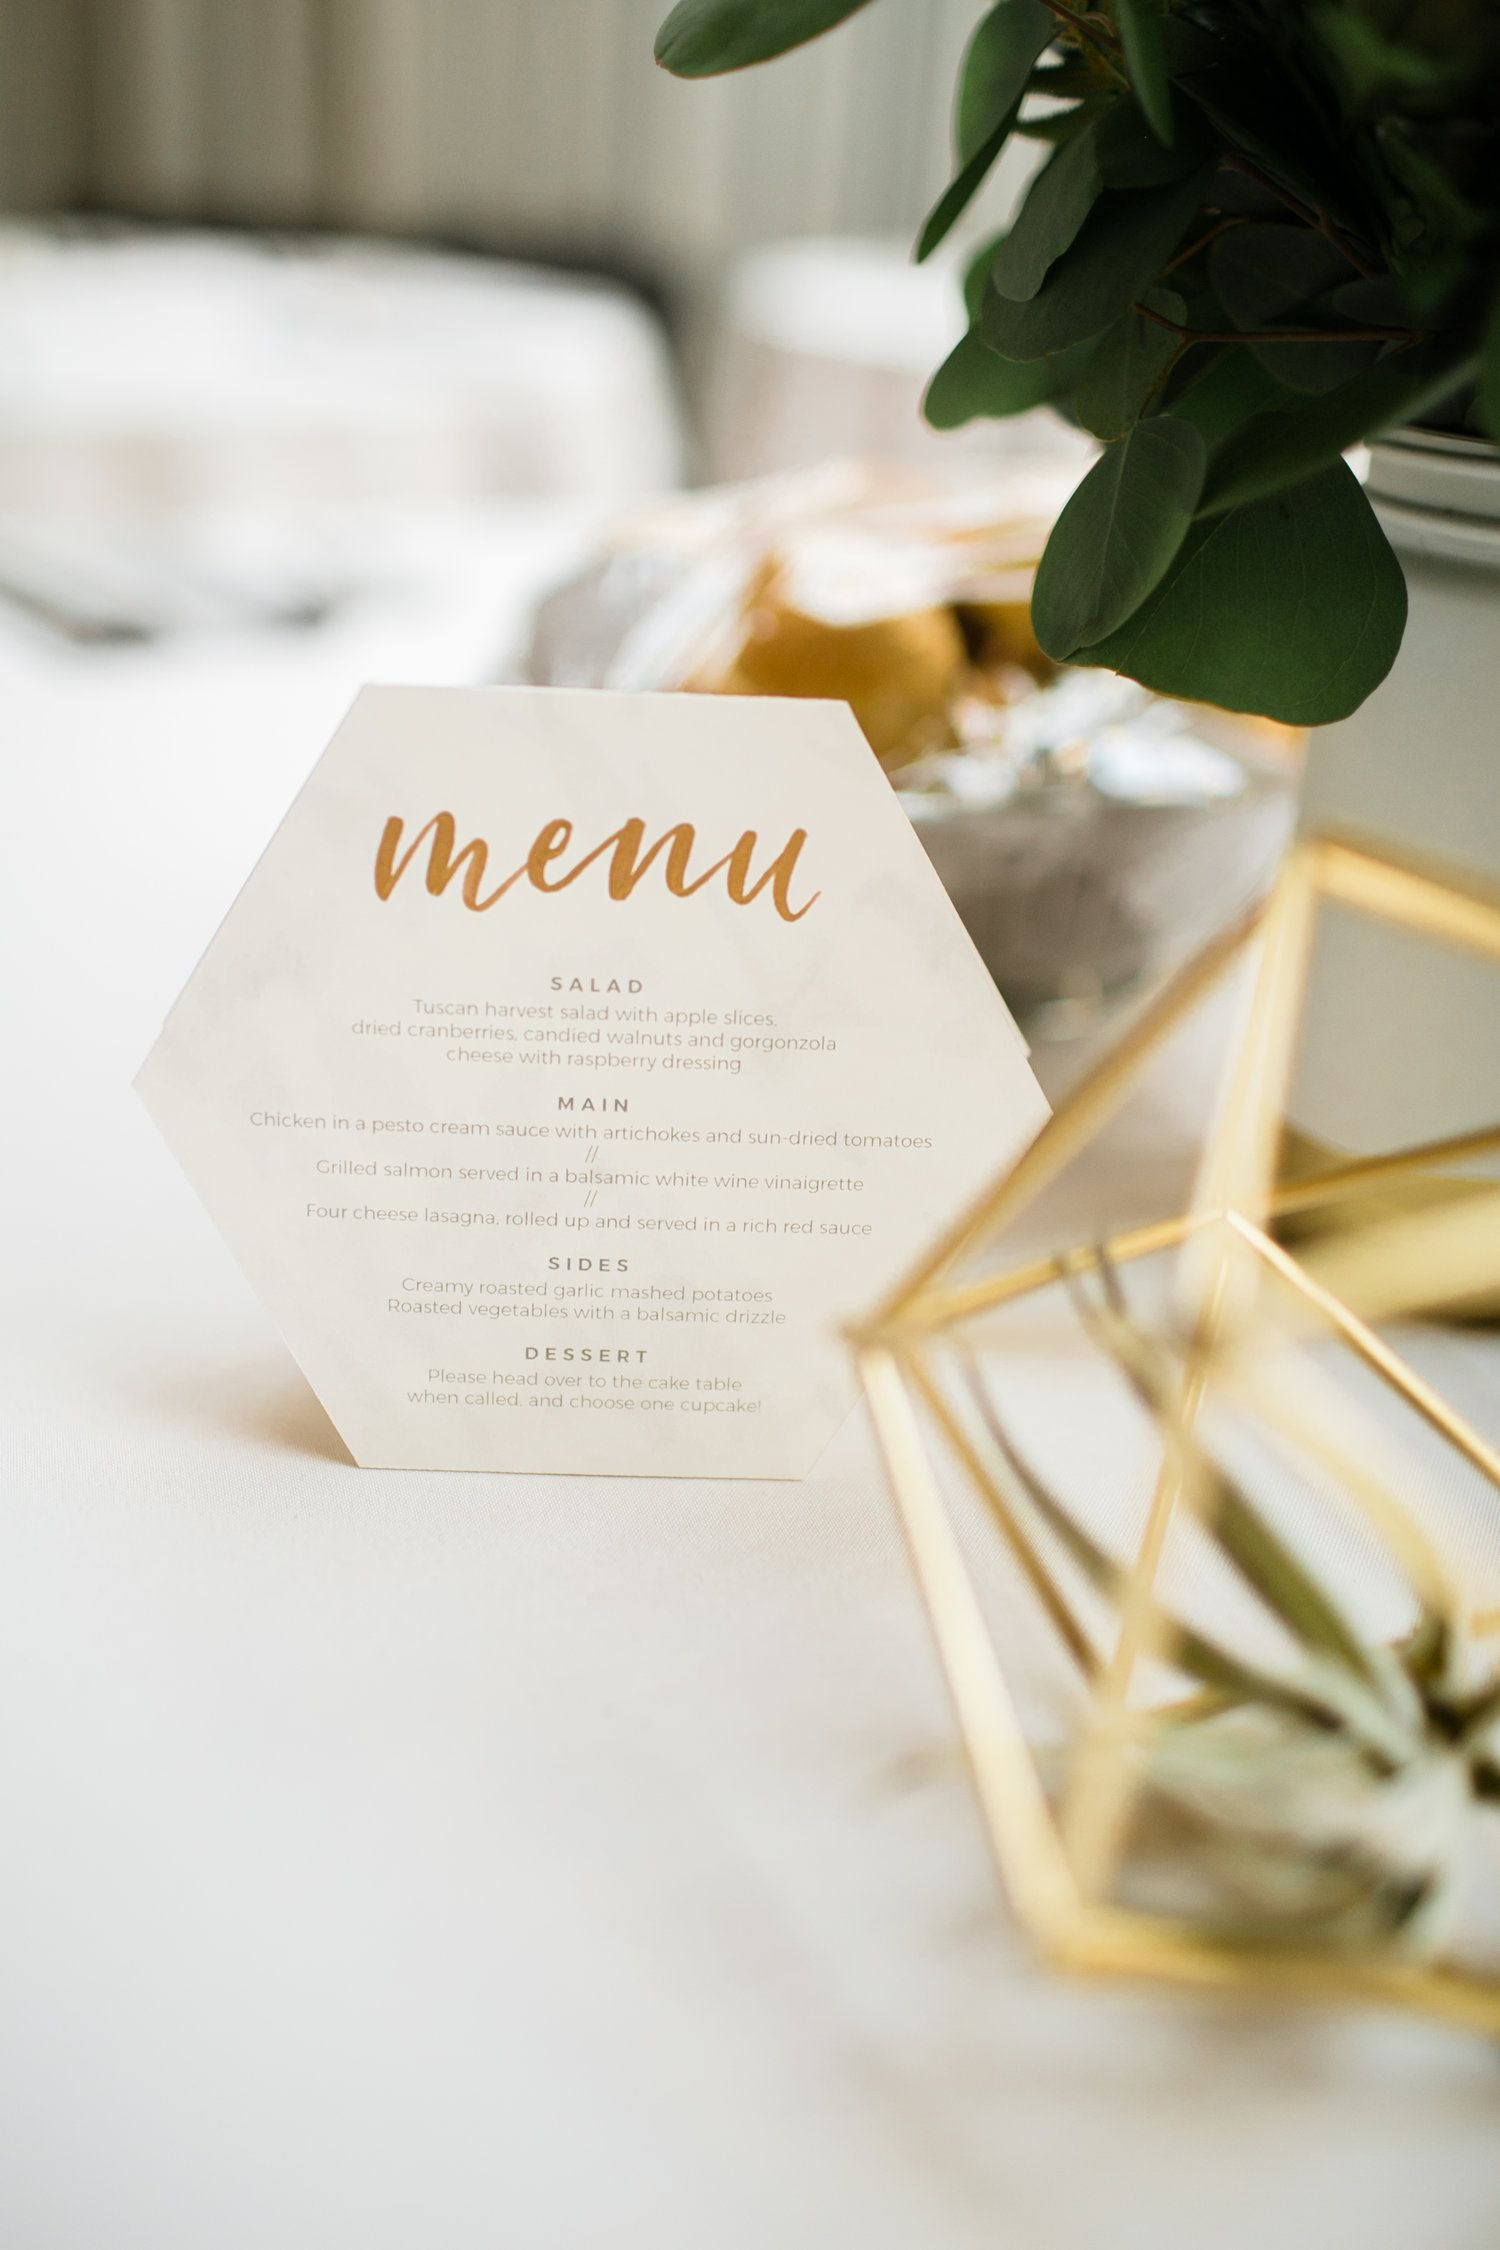 menu design and calligraphy by grace niu, photo by mayden